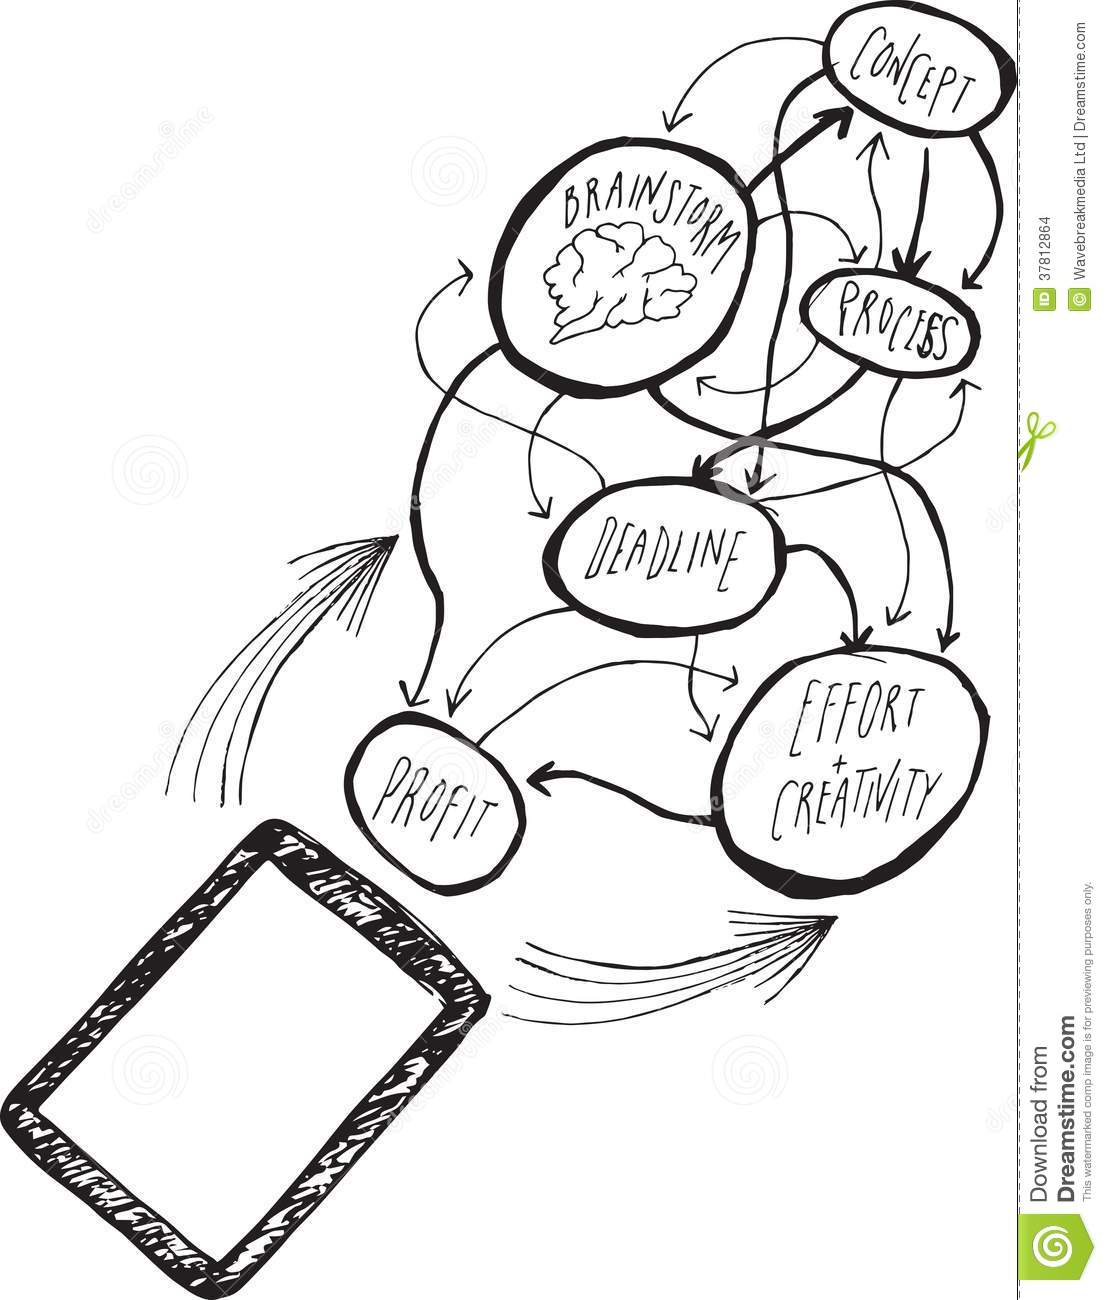 Flowchart With Digital Tablet Doodle Stock Illustration